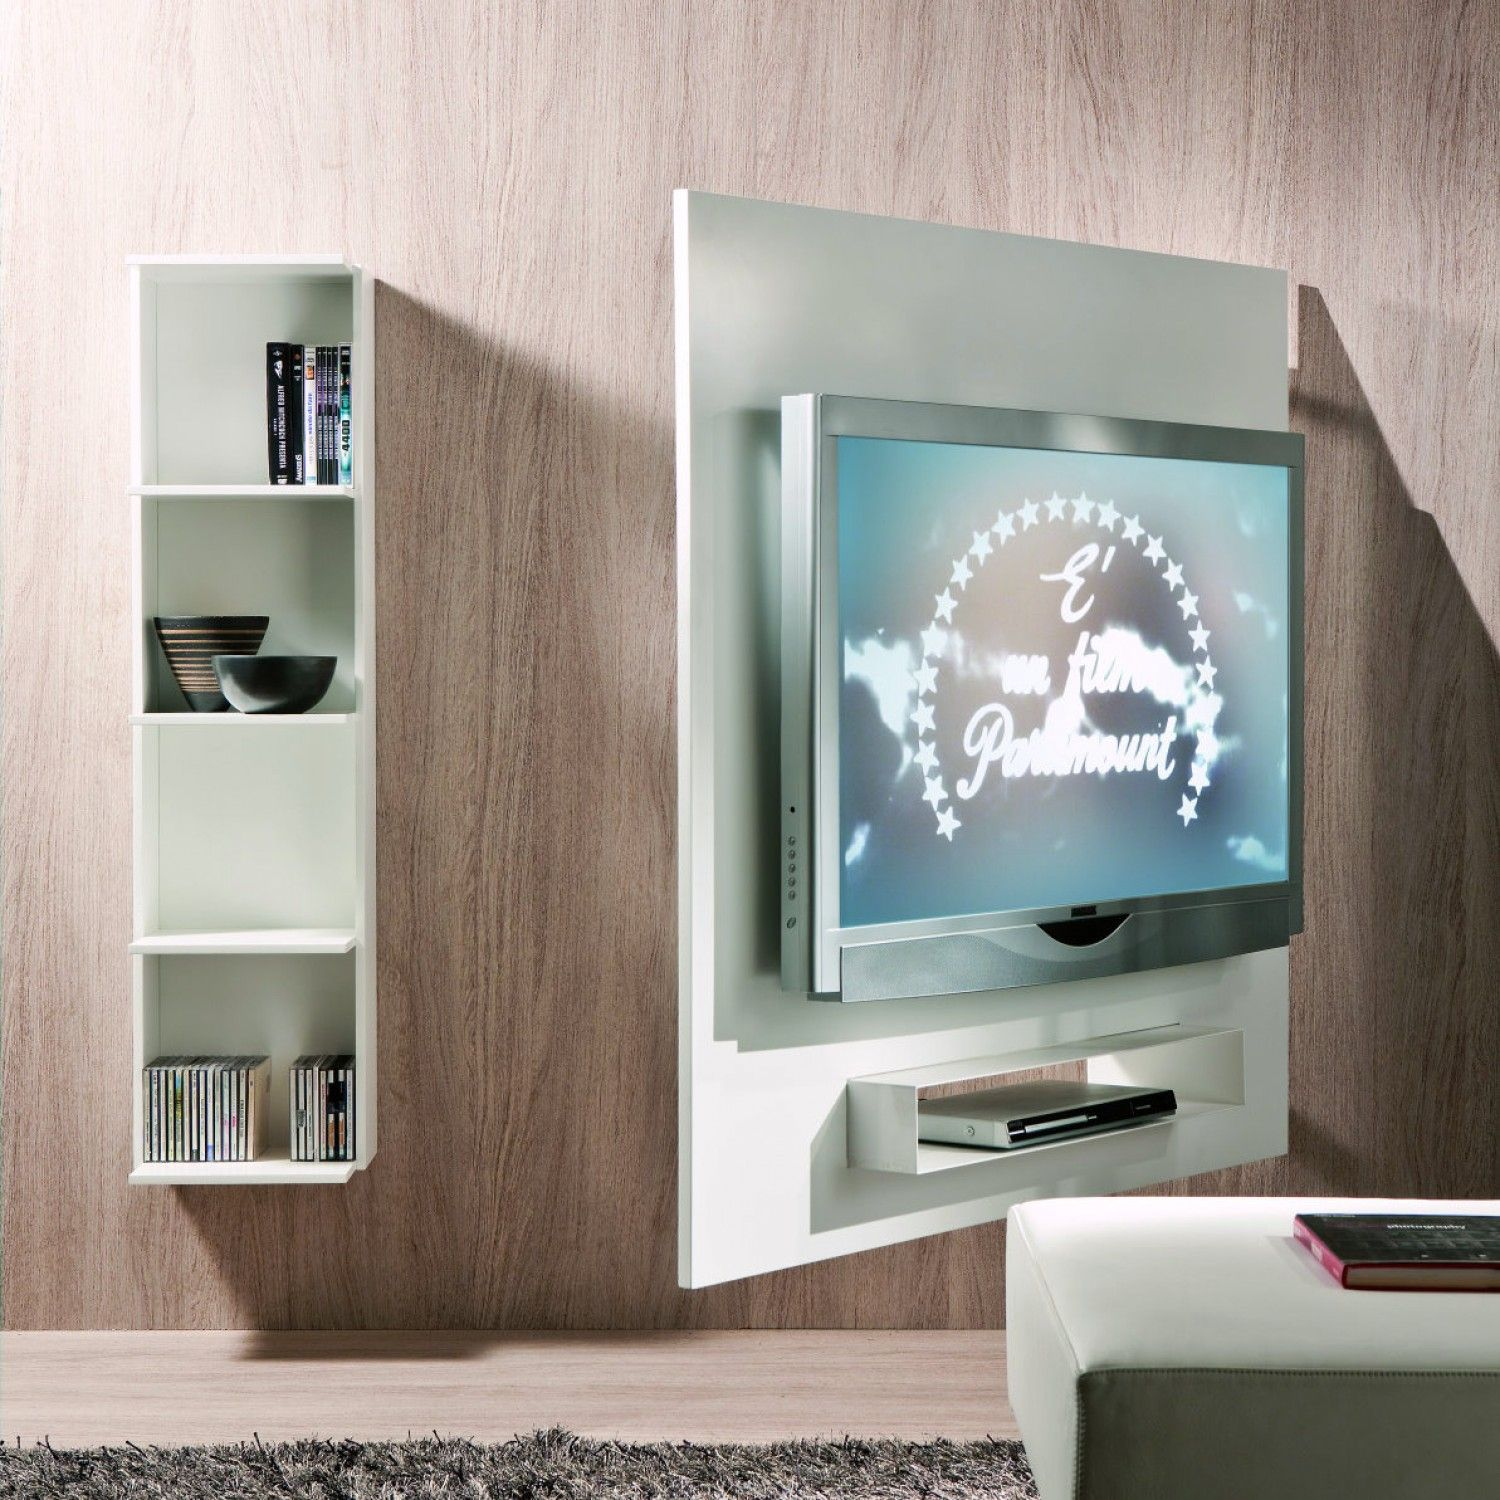 Ghost schwenkbares TV-Wandpaneel mit Bücherregal | @home | Pinterest ...